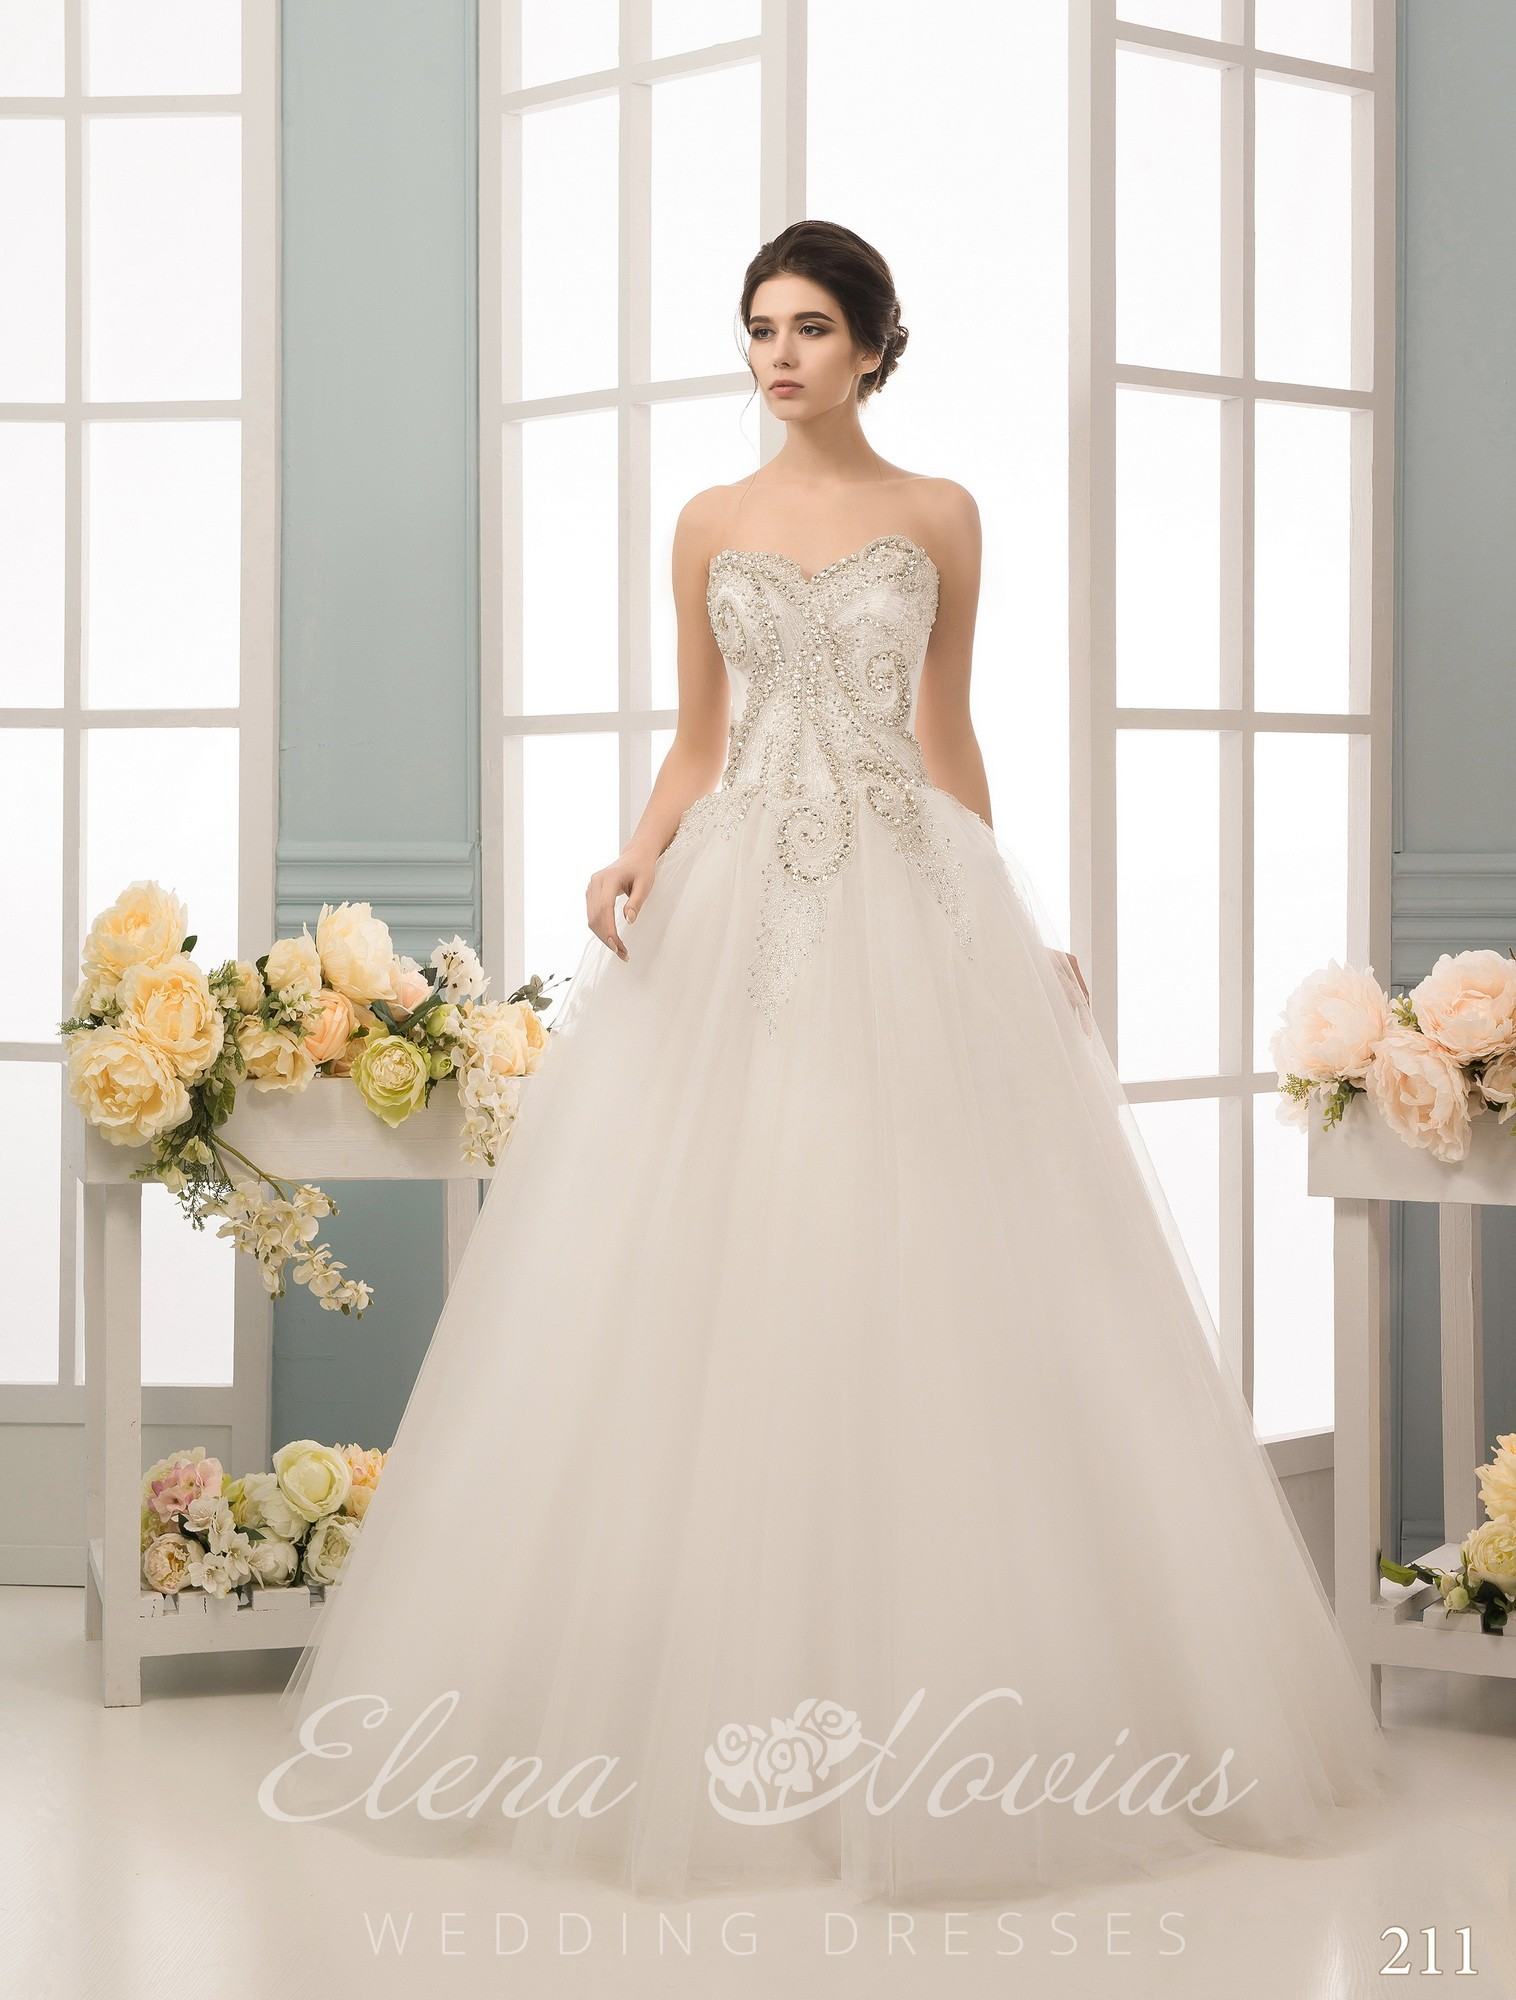 Wedding dress wholesale 211